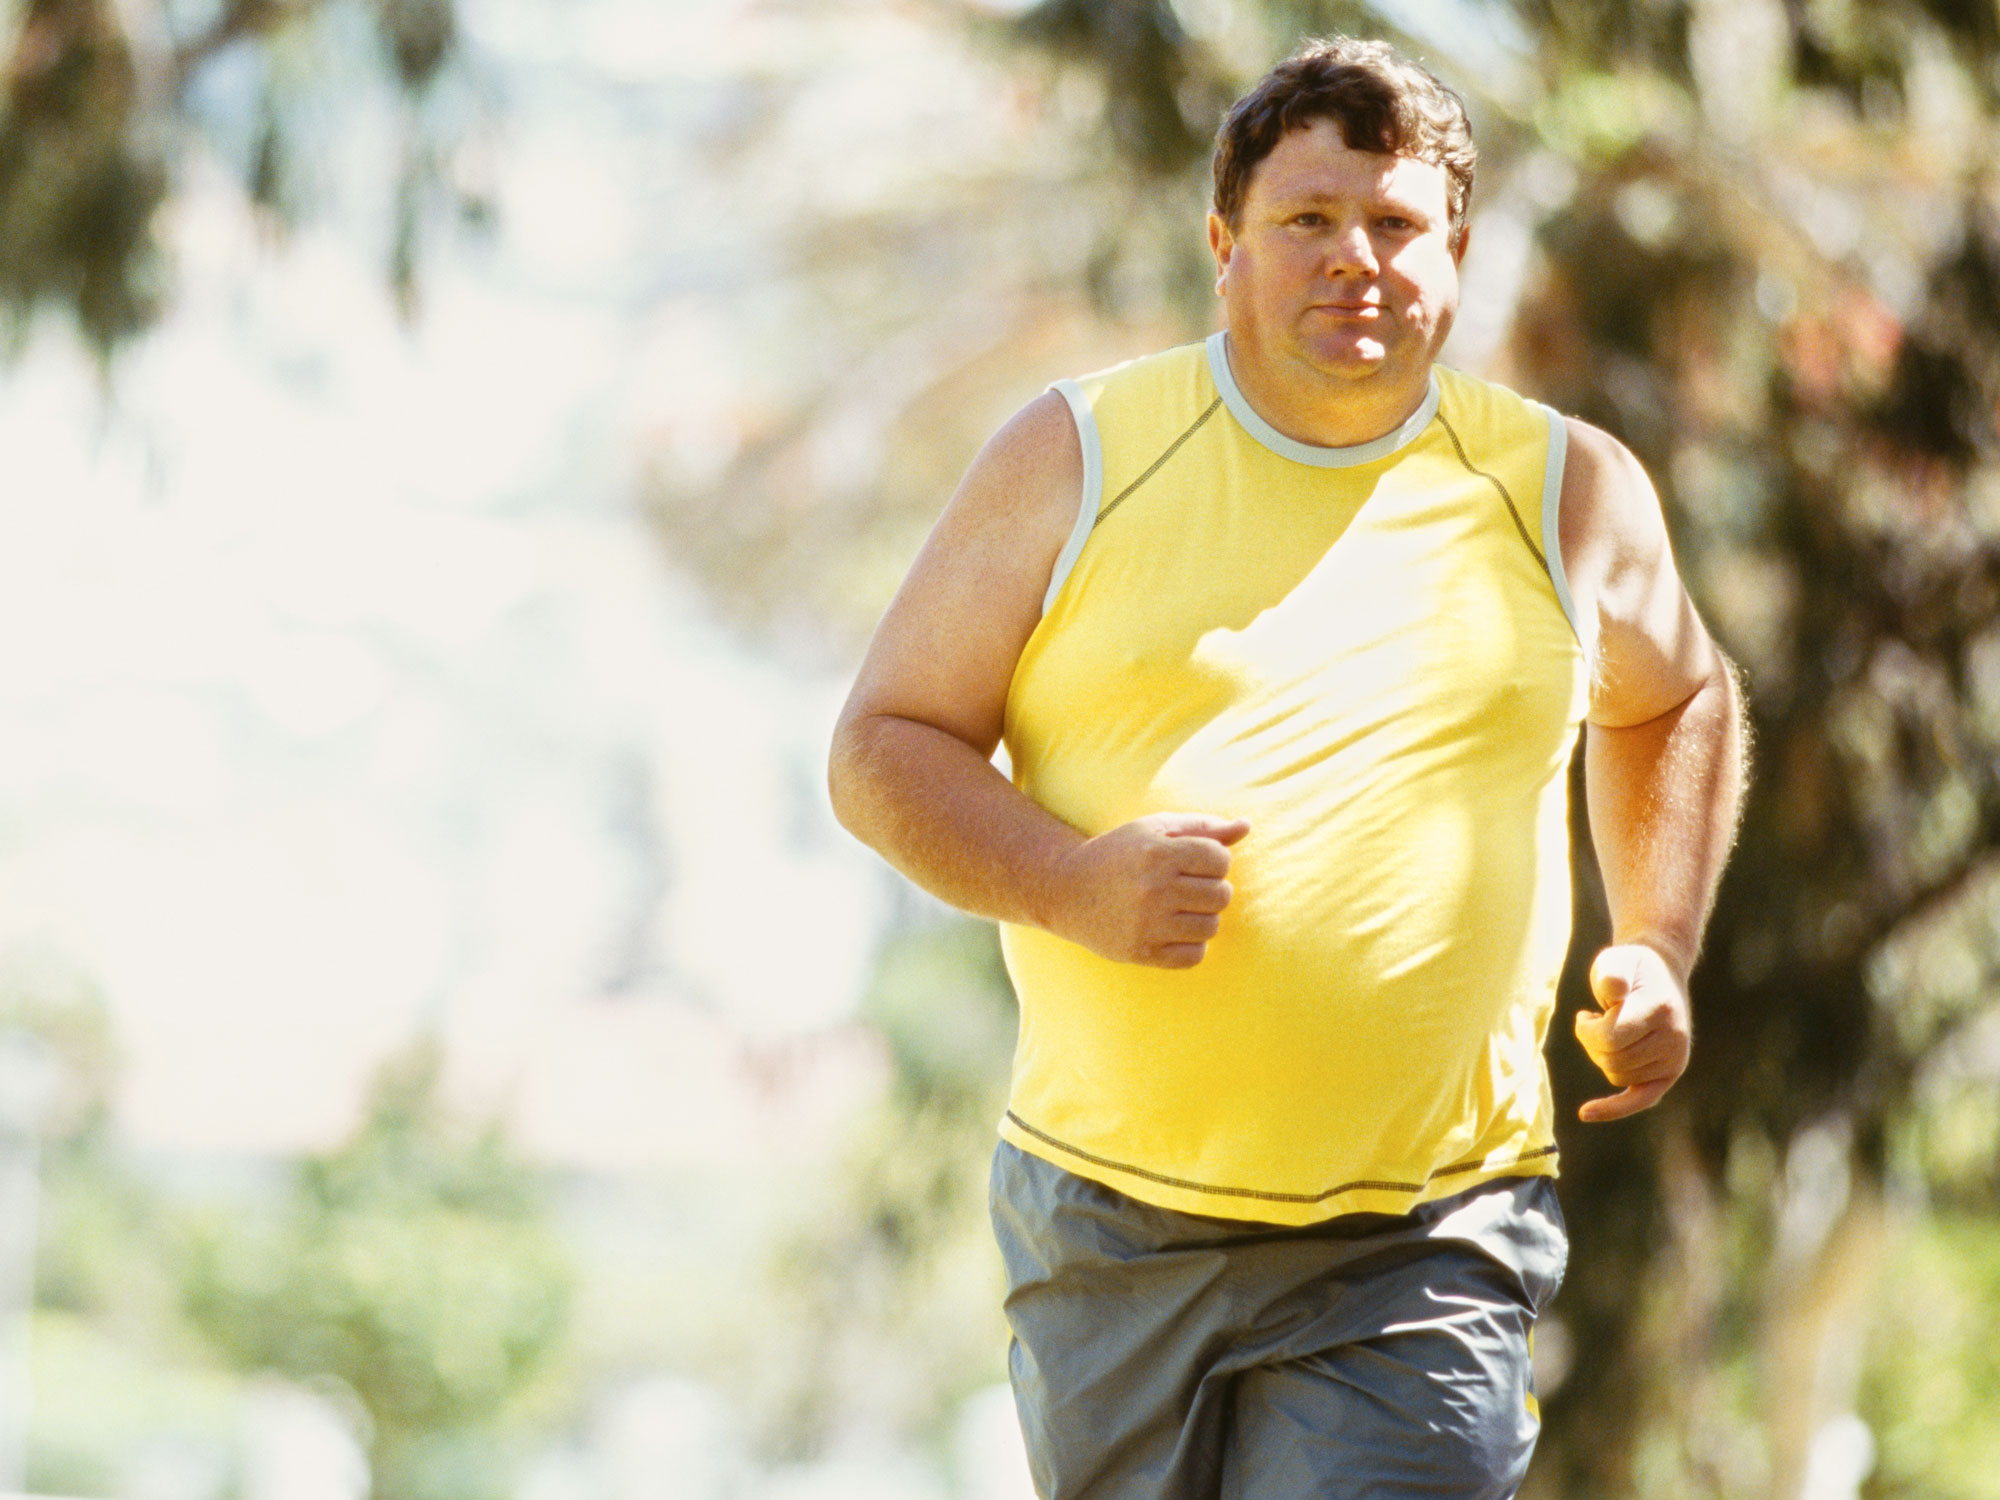 The vicious cycle that makes a 'dad bod'